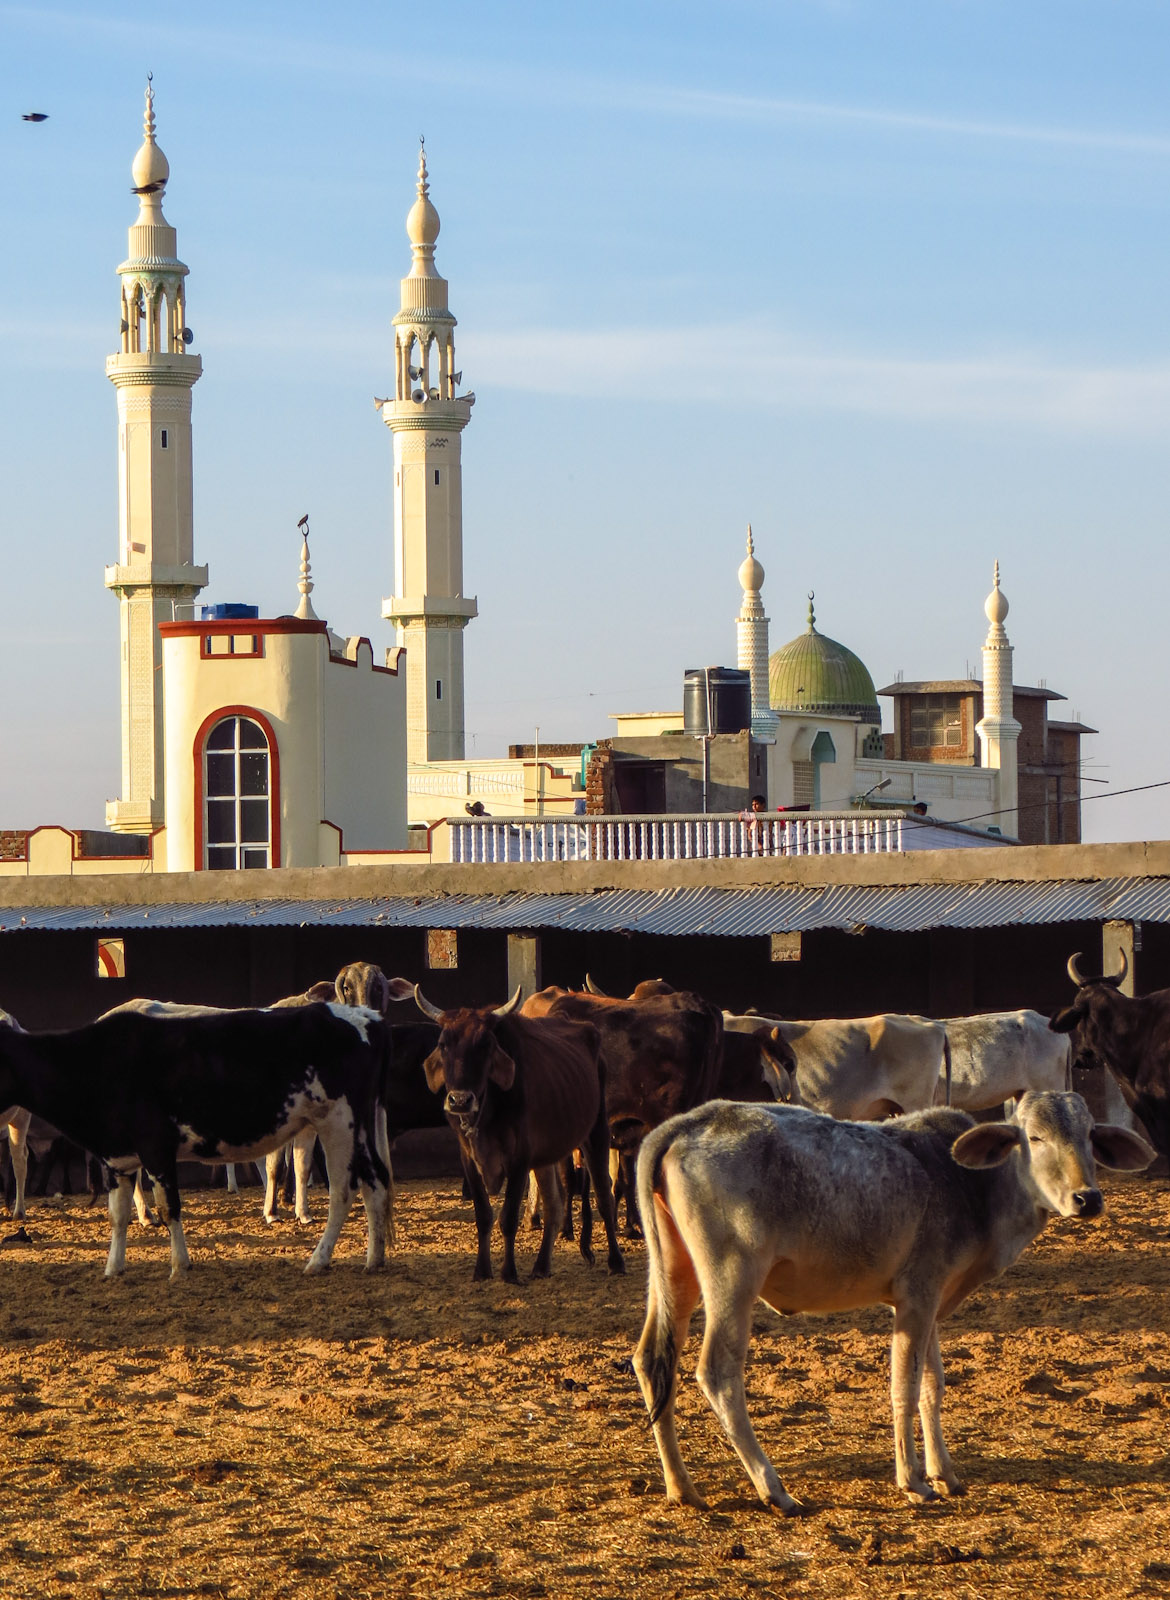 mandawa-mosque-and-cows